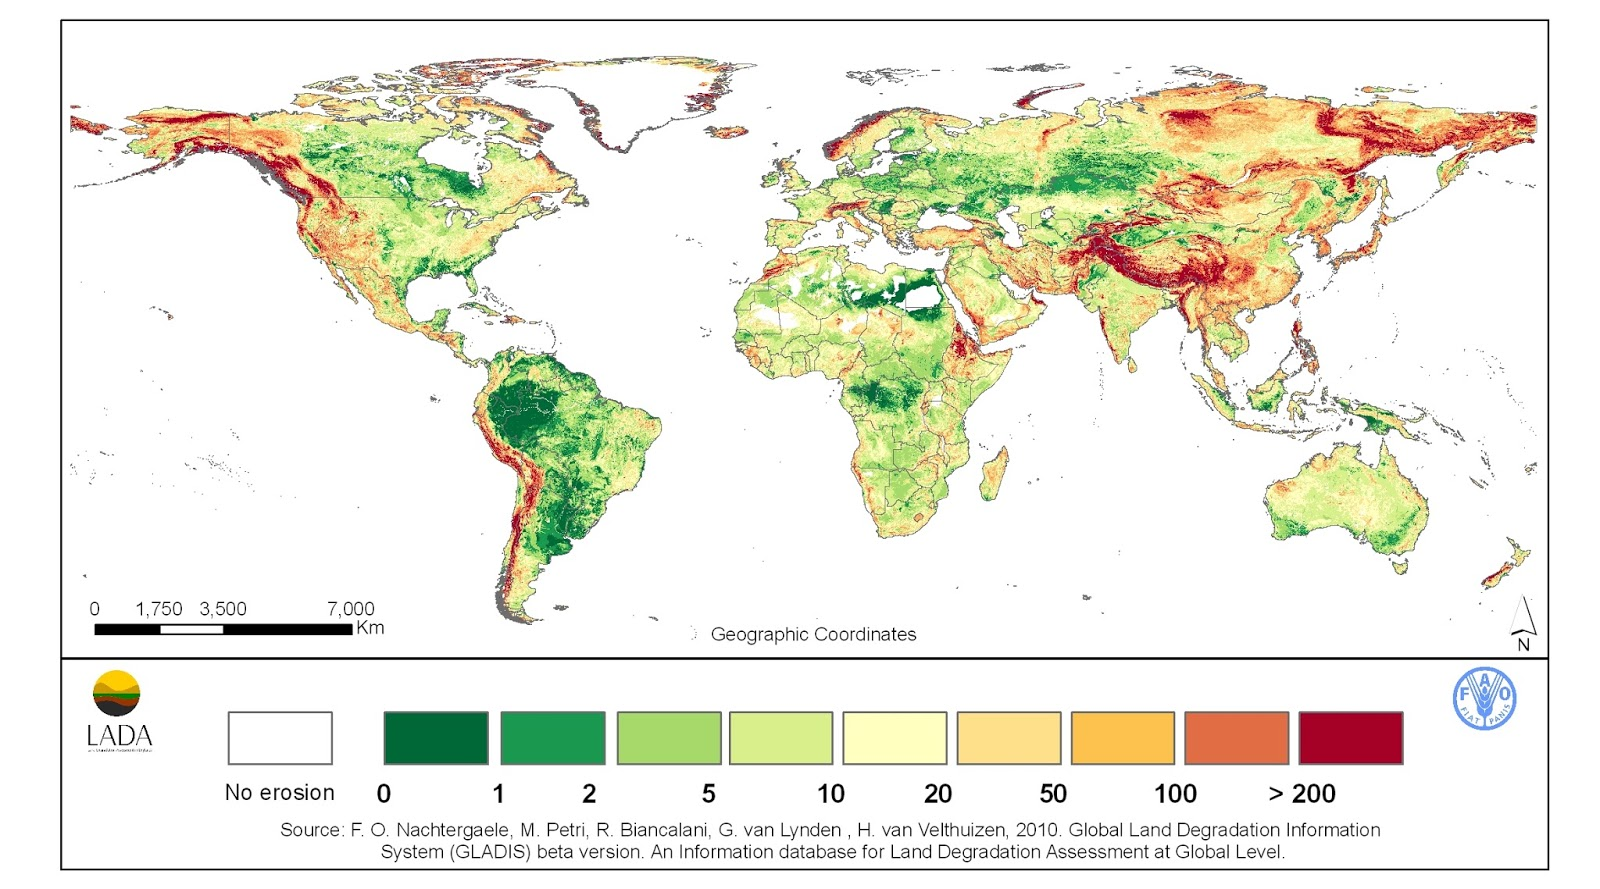 Soil loss by water erosion across the world